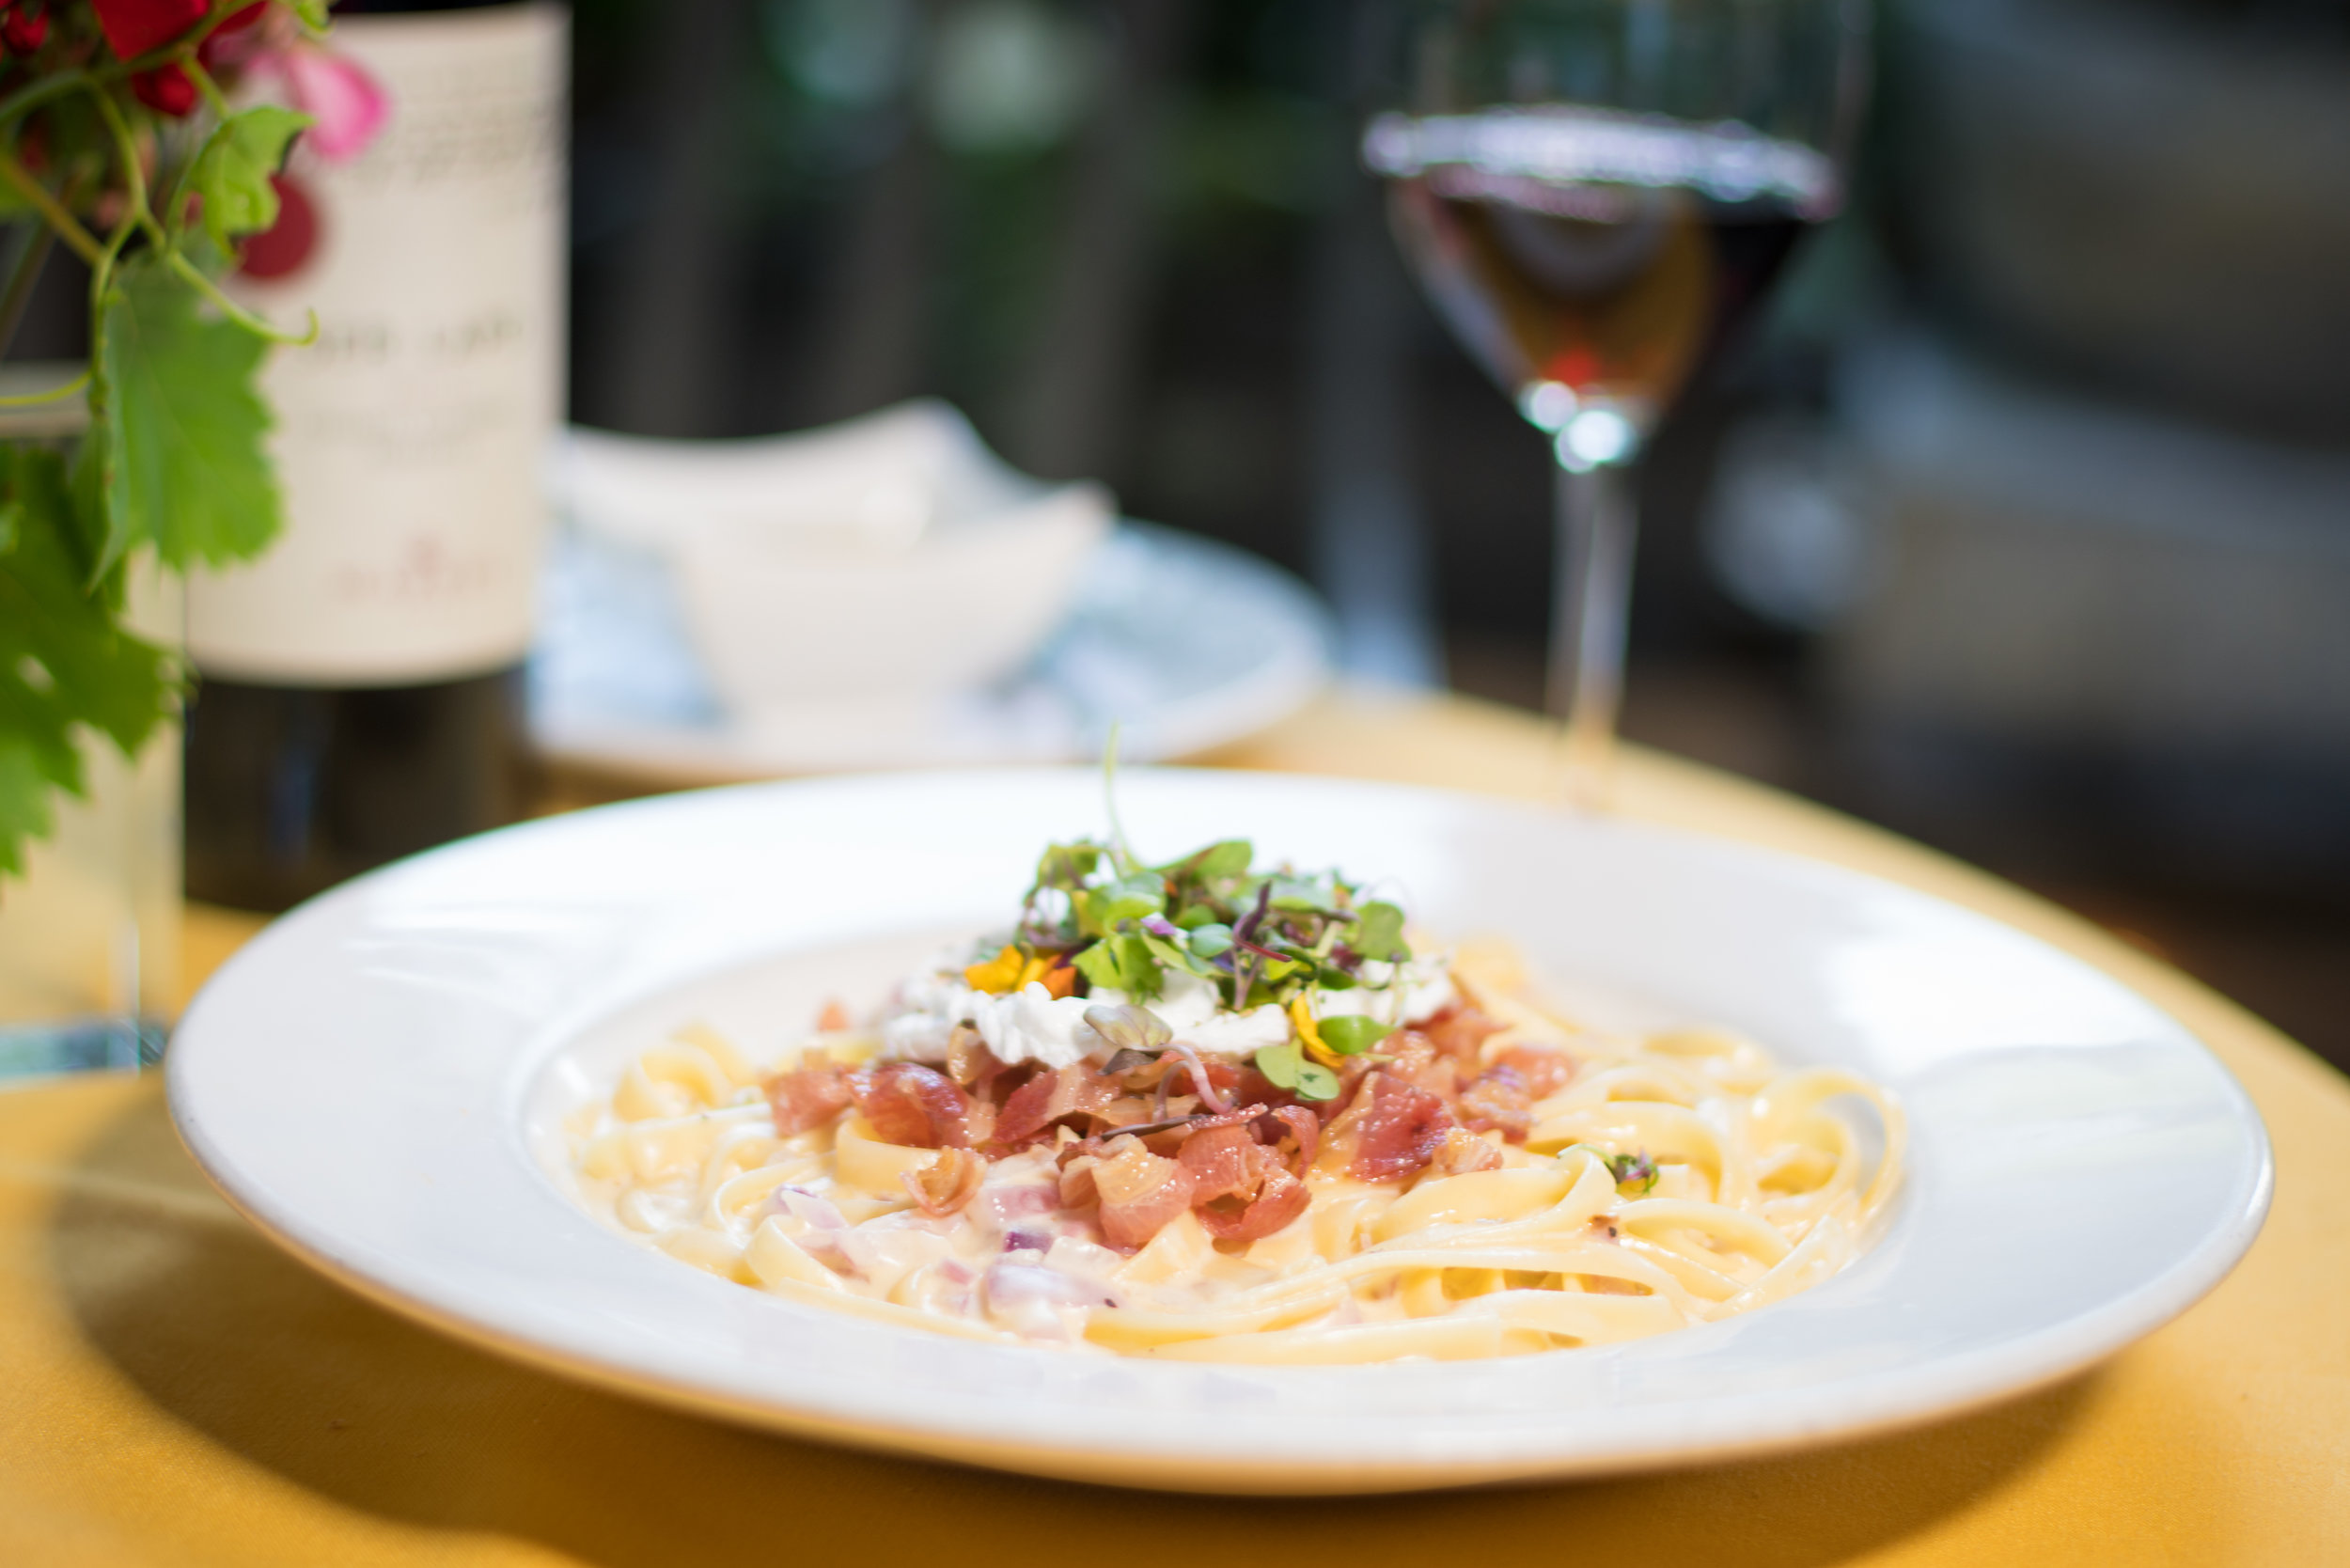 Antonio's Carbonara - Fettuccine pasta tossed in freshly made cream sauce with black pepper, onions, white wine, and topped with a perfectly poached egg and pancetta.